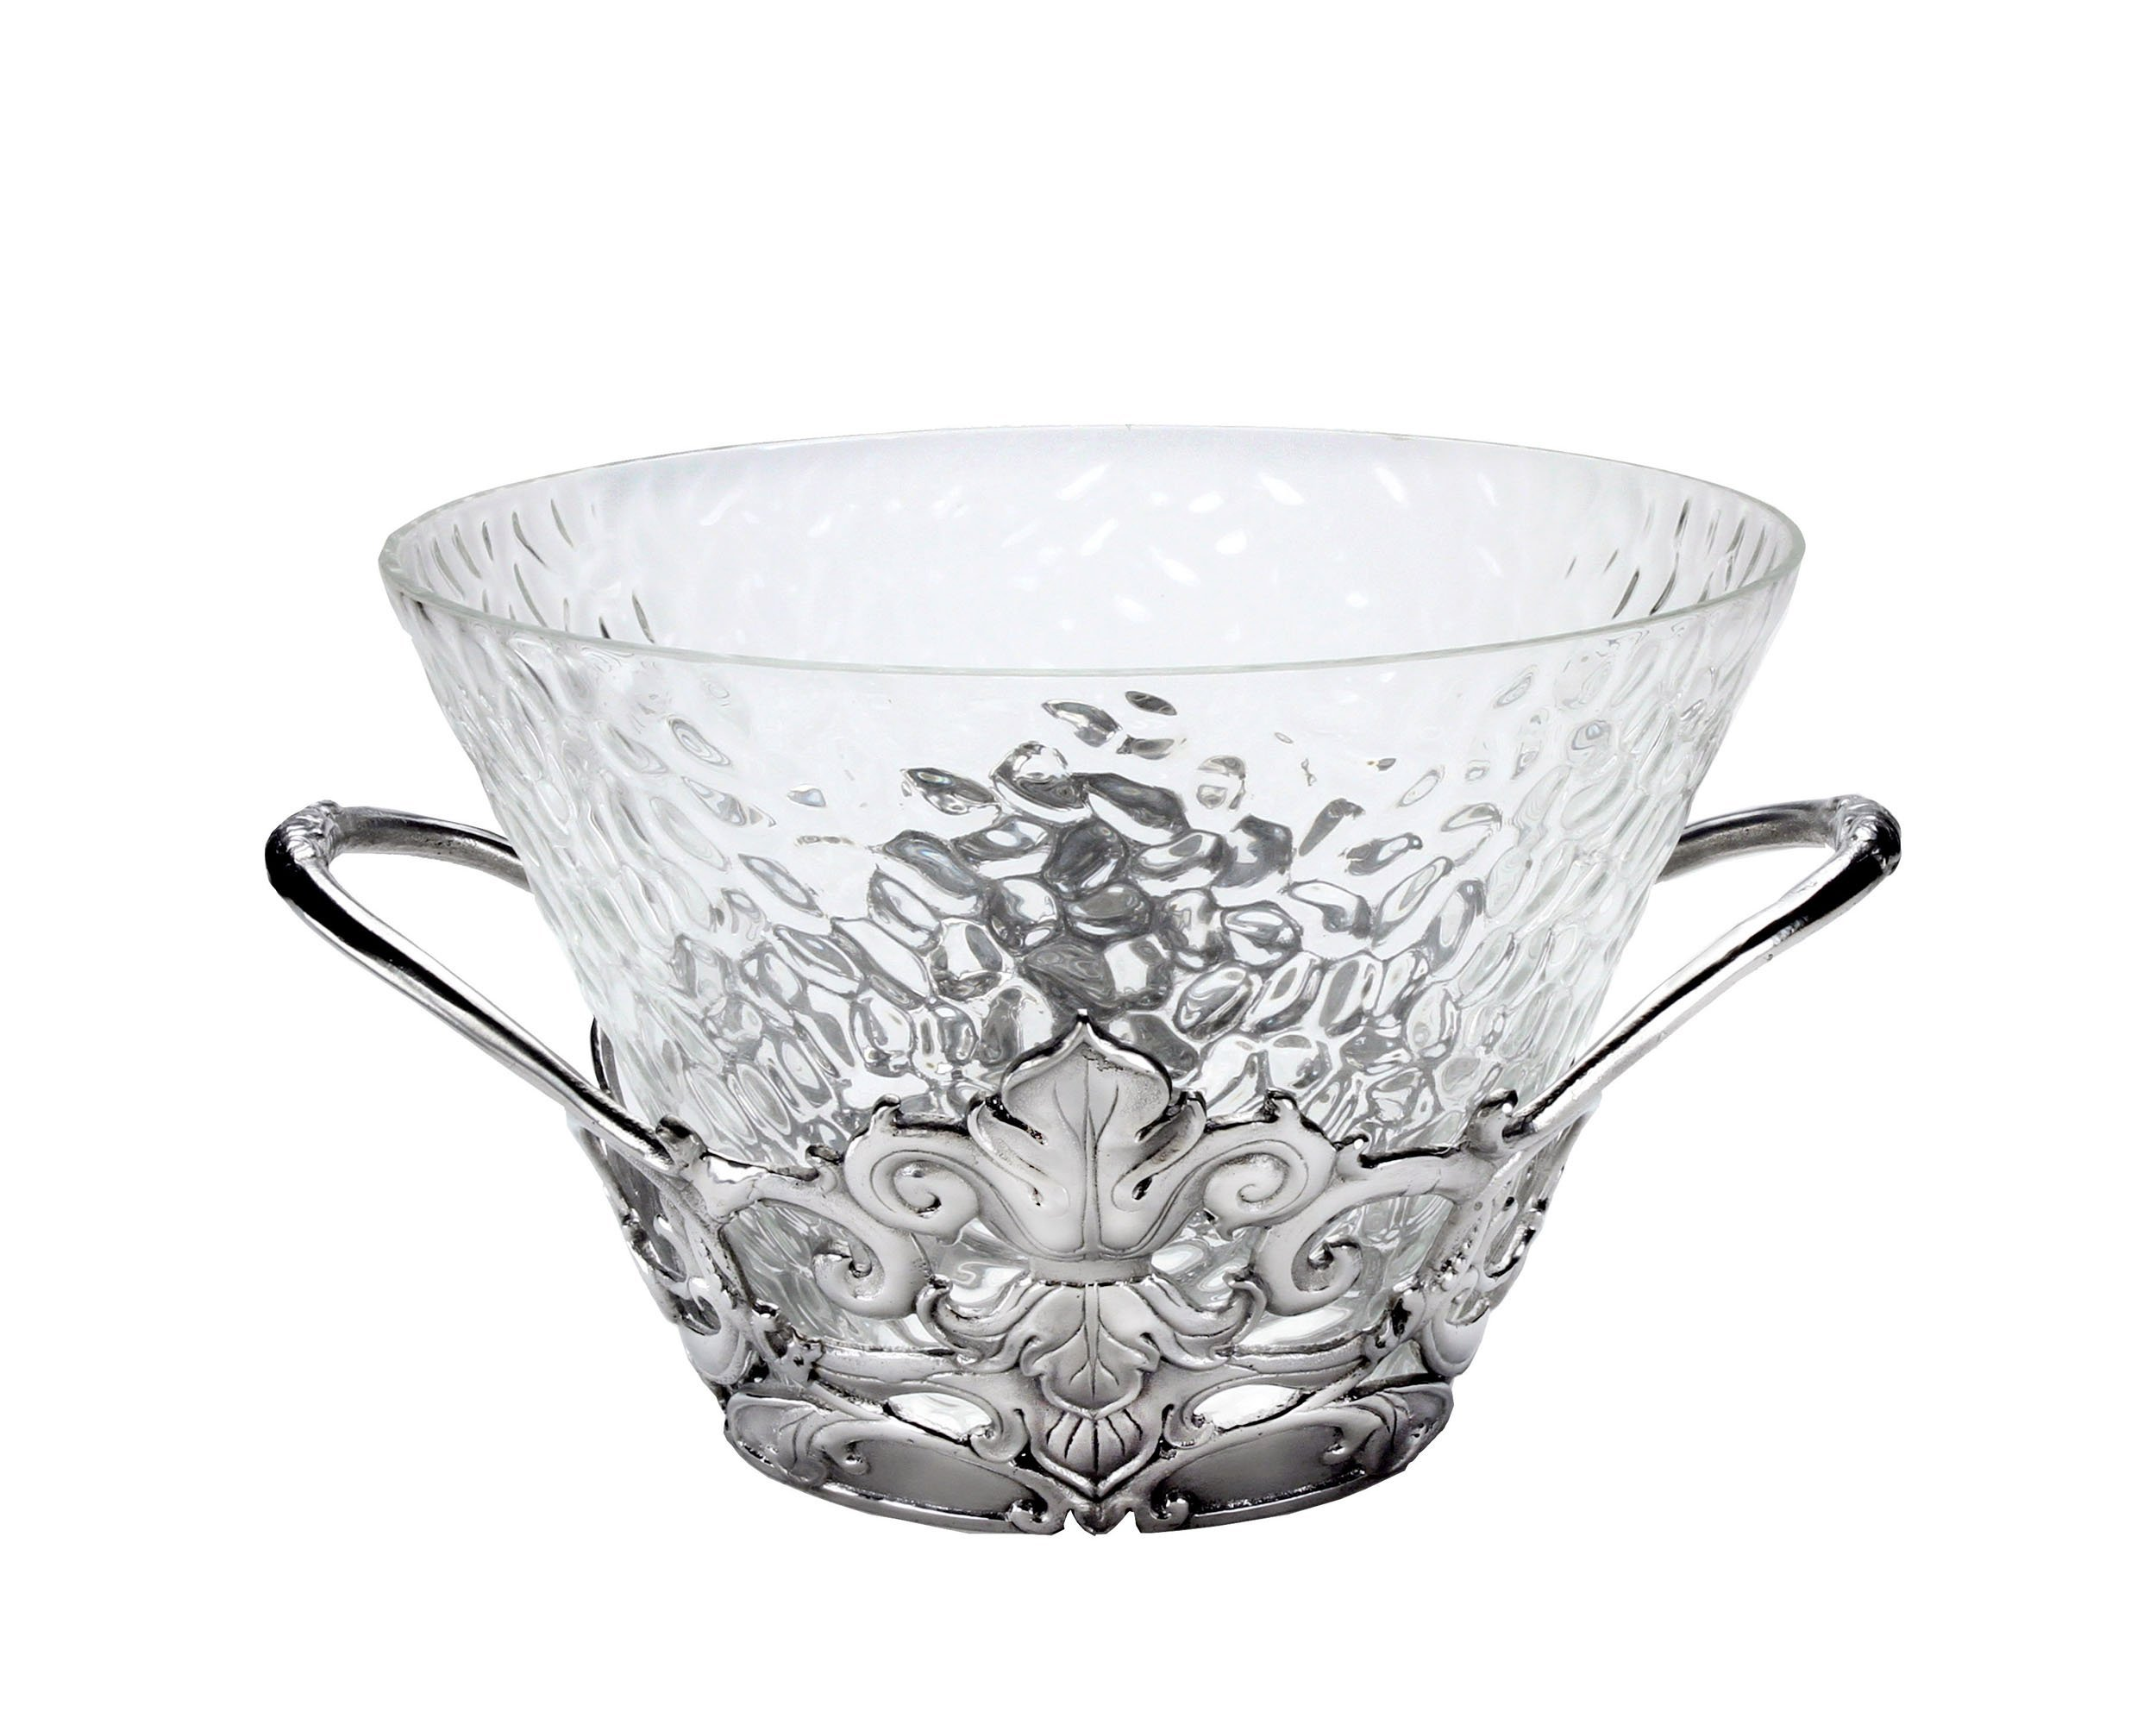 Arthur Court Designs Aluminum Fleur-De-Lis Ice Tub 8 Inches Tall and 14 Inches Diameter by Arthur Court (Image #1)